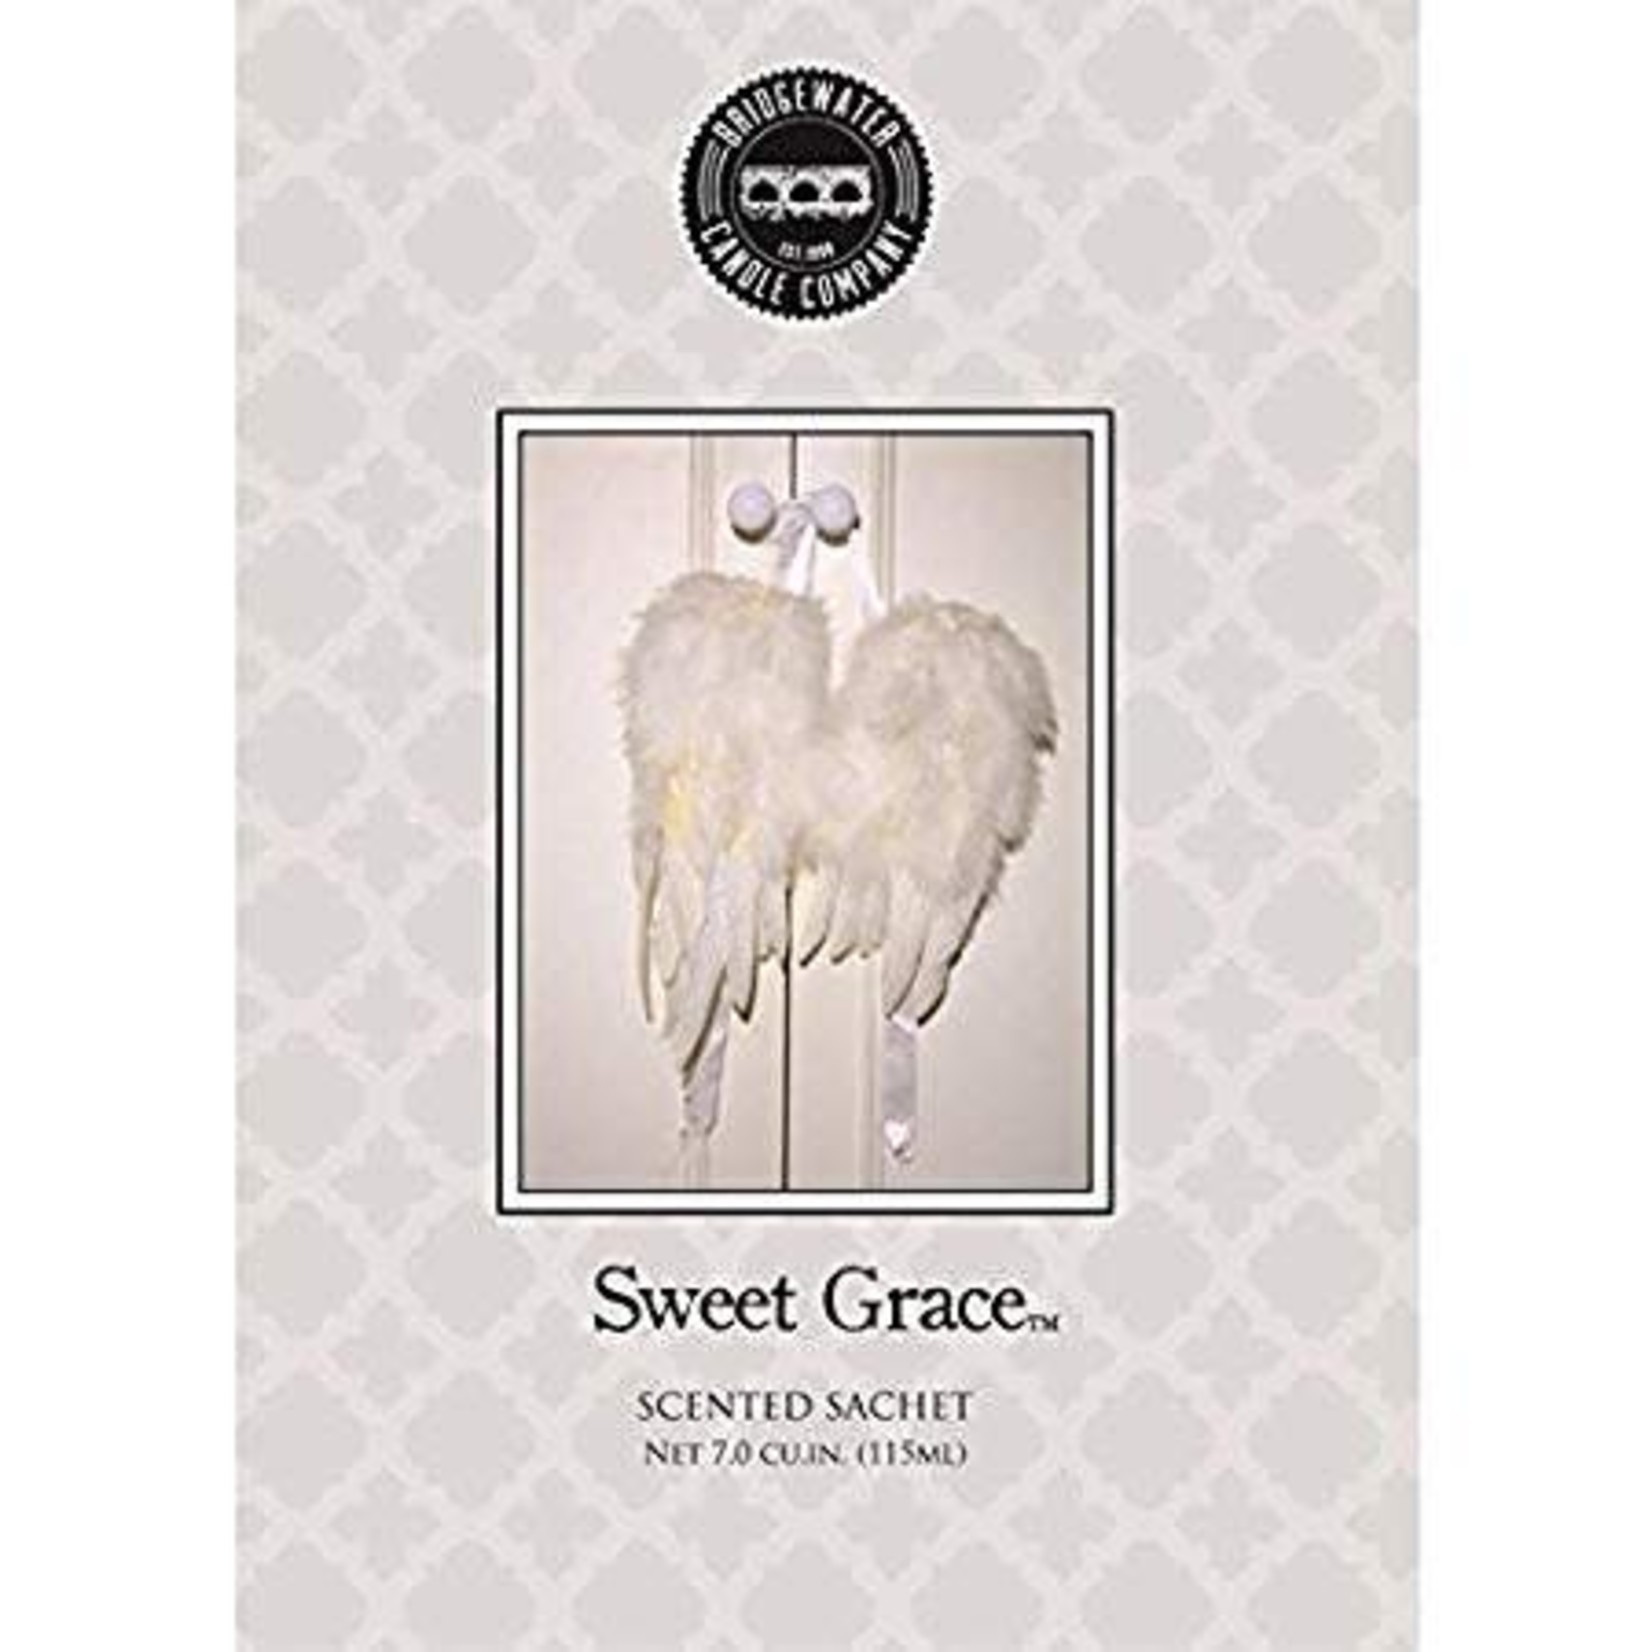 Bridge Water Candle Company BRIDGEWATER SWEET GRACE SCENTED ENVELOPE SACHET